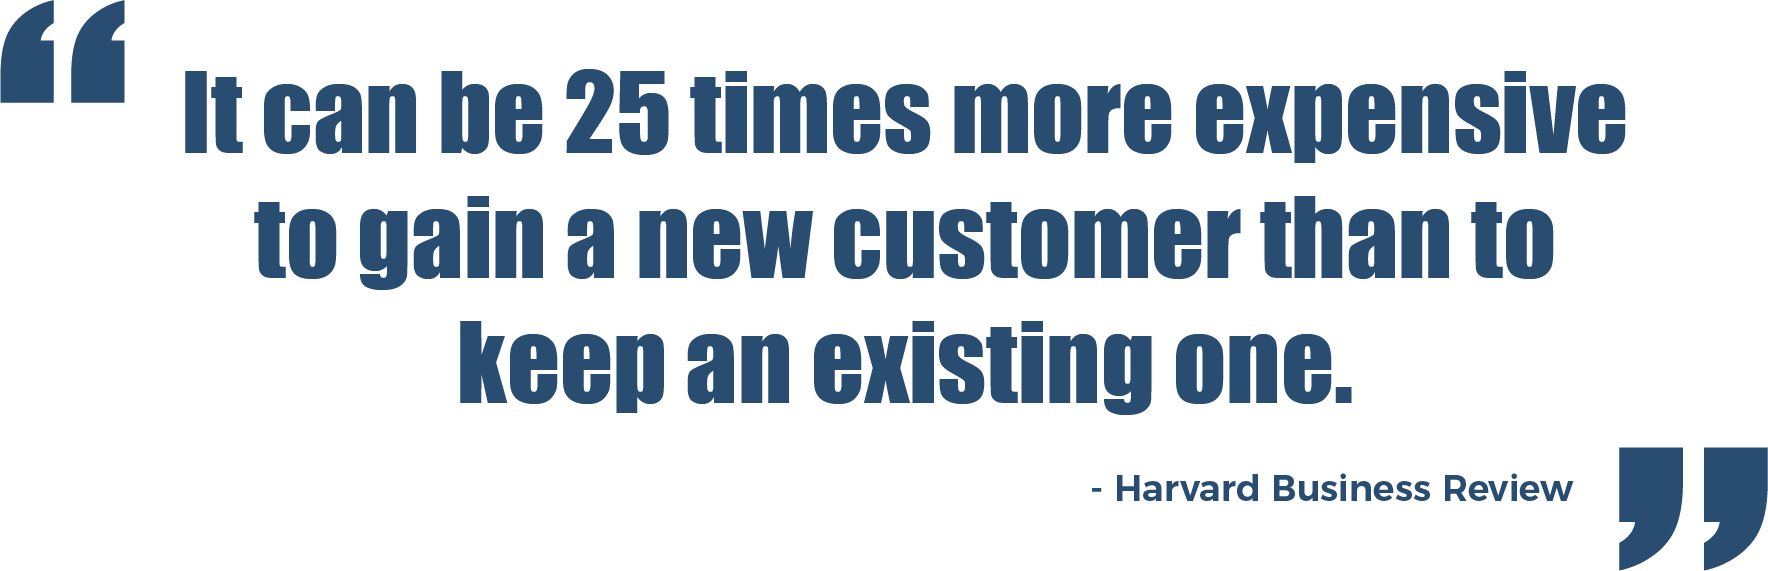 more expensive to gain a new customer than to keep an existing one